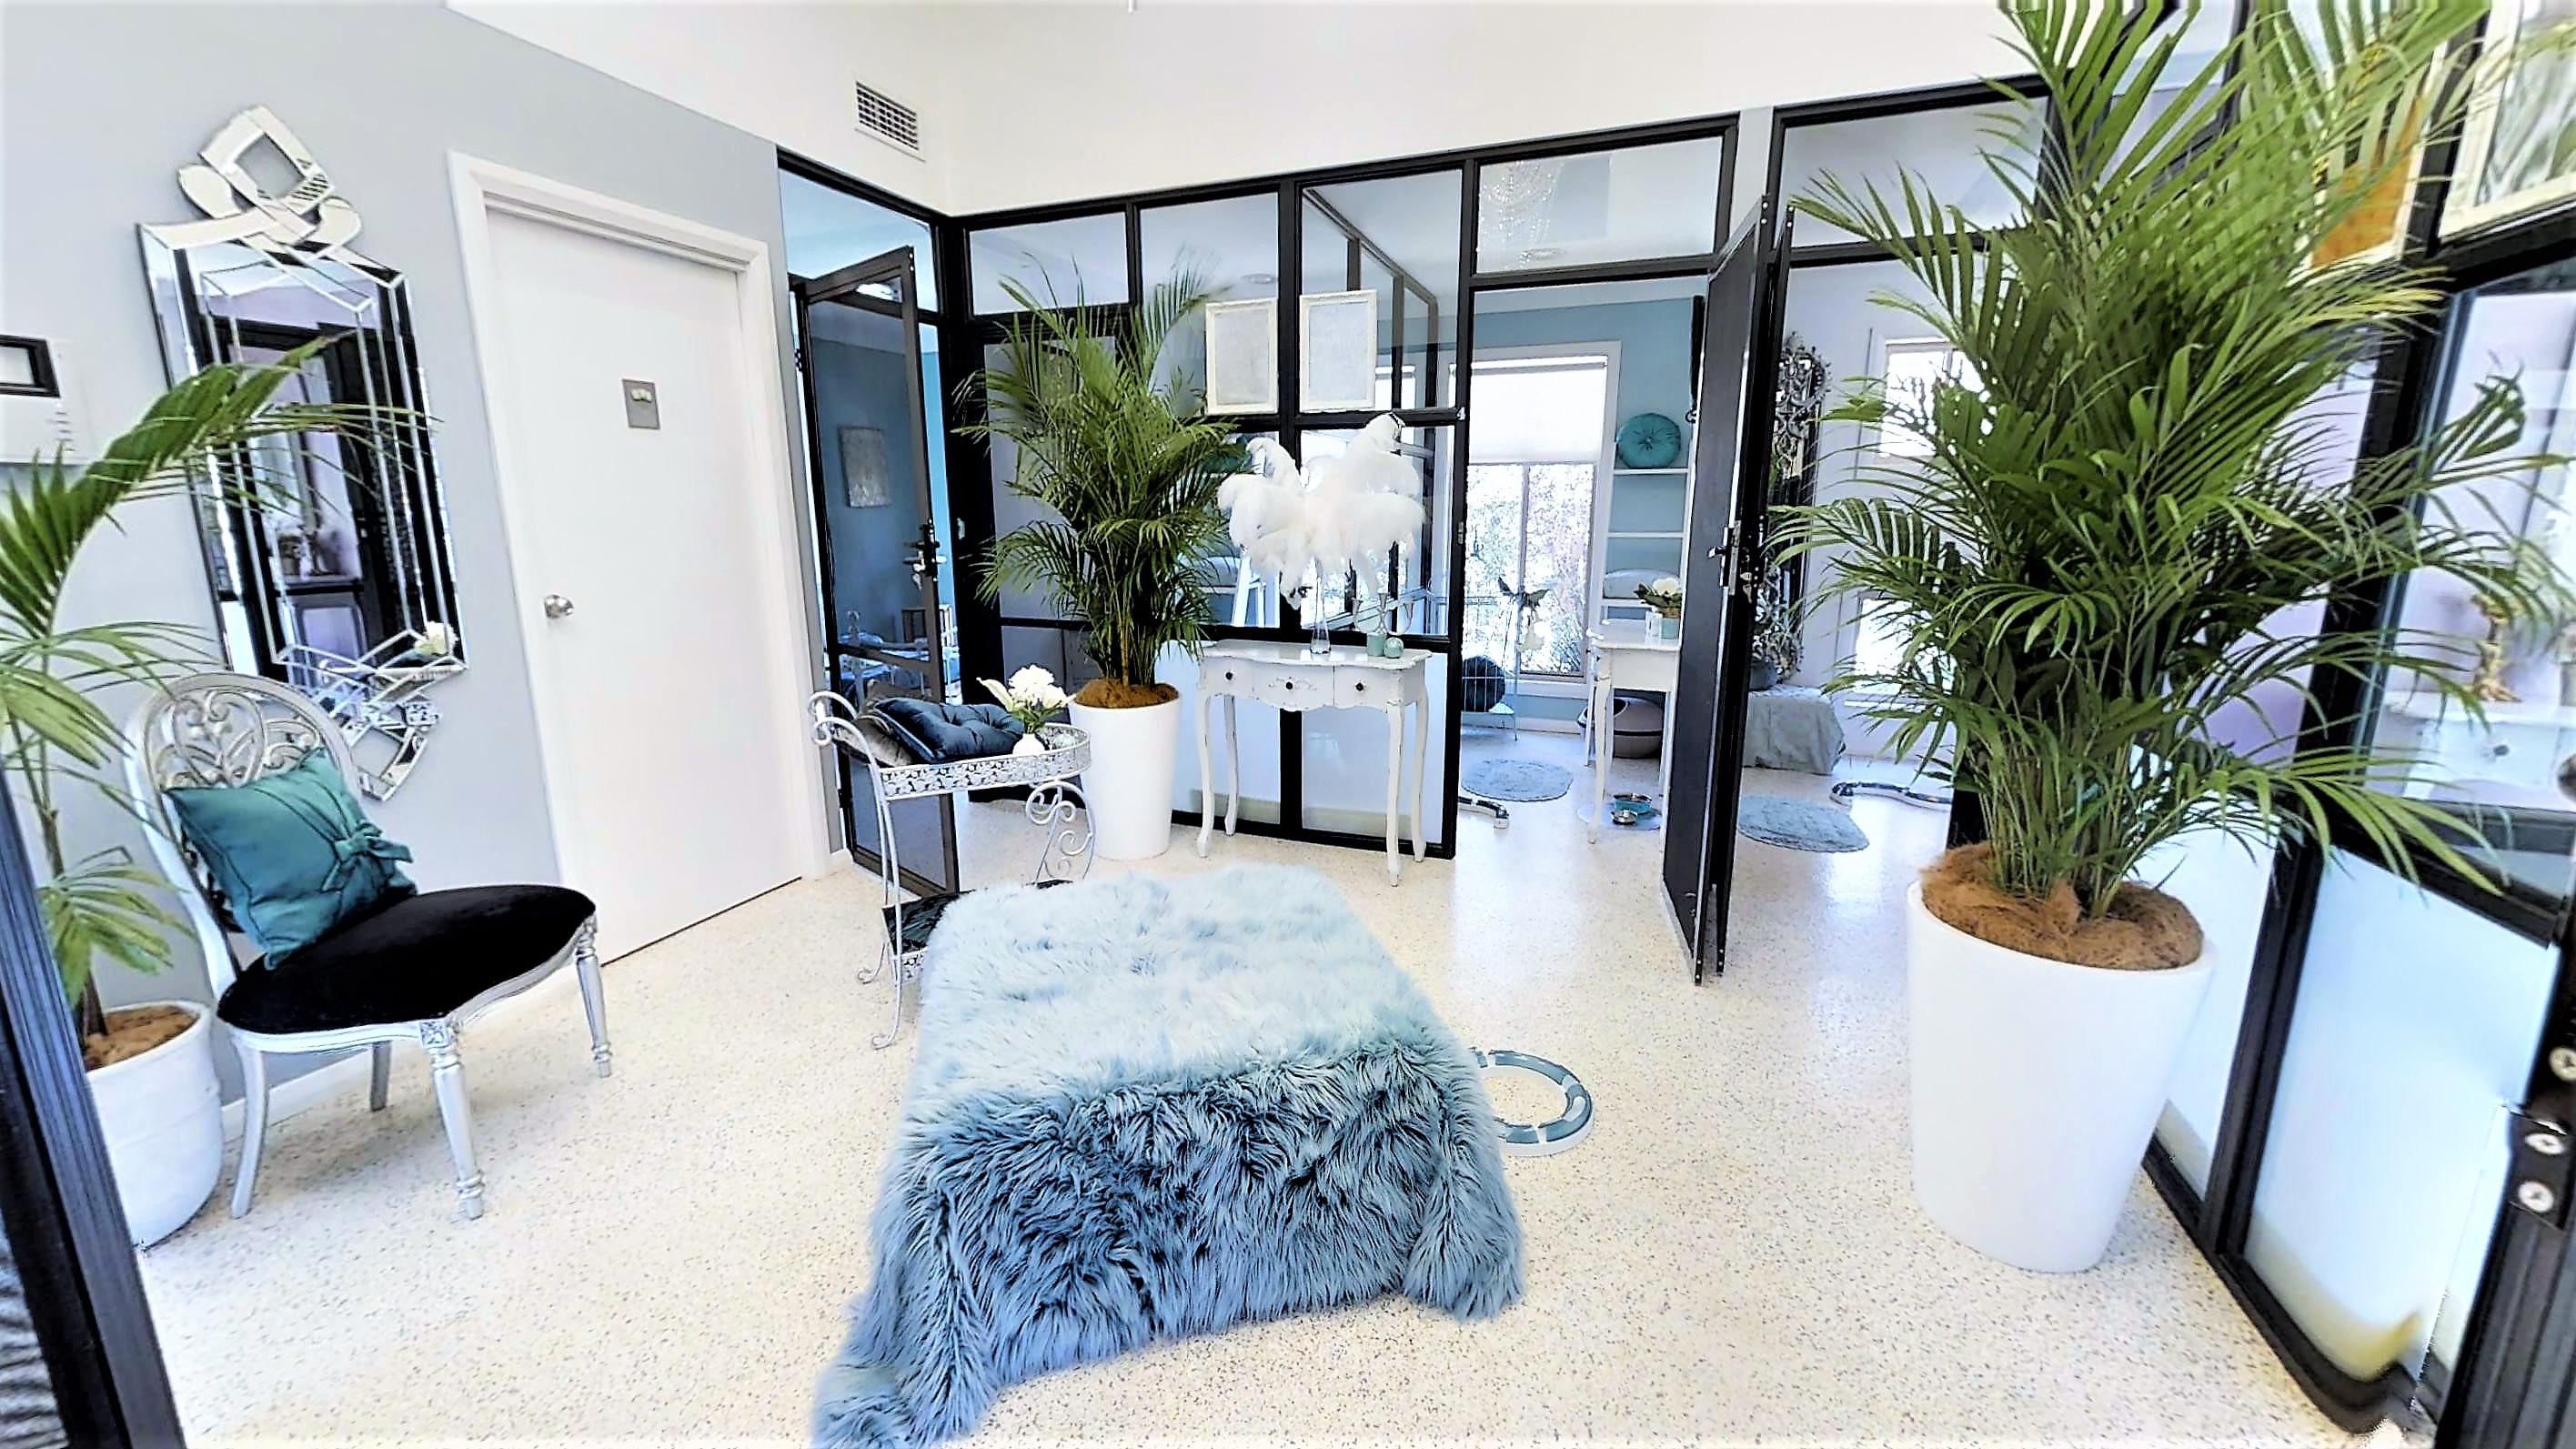 The Great Catsby Luxury Kitty Lounge Room